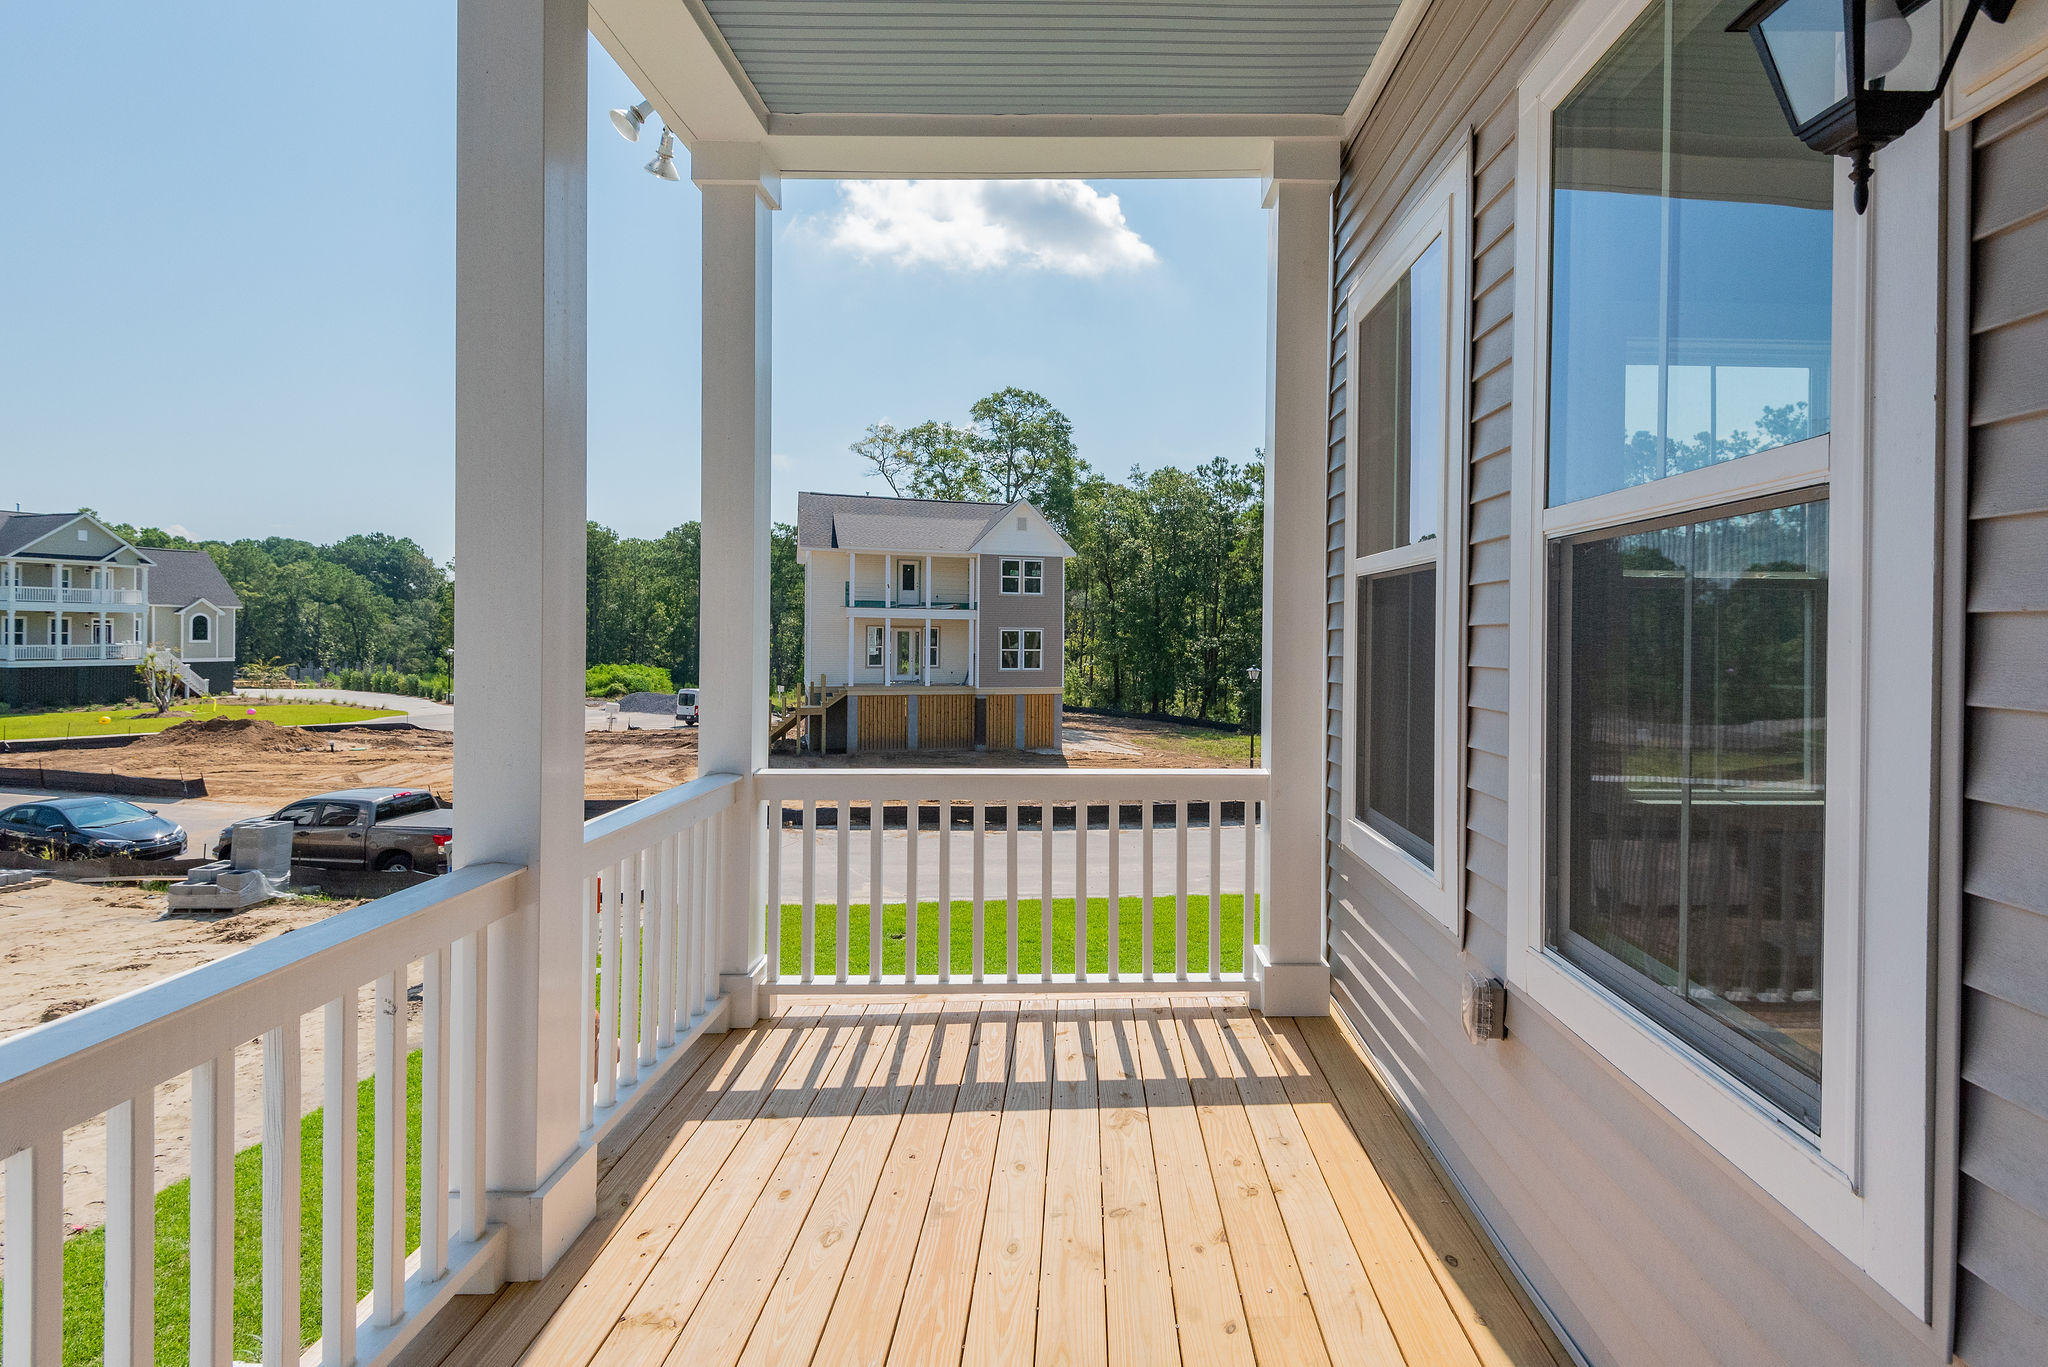 The Cove at Martins Creek Homes For Sale - 117 Martins Point, Wando, SC - 30